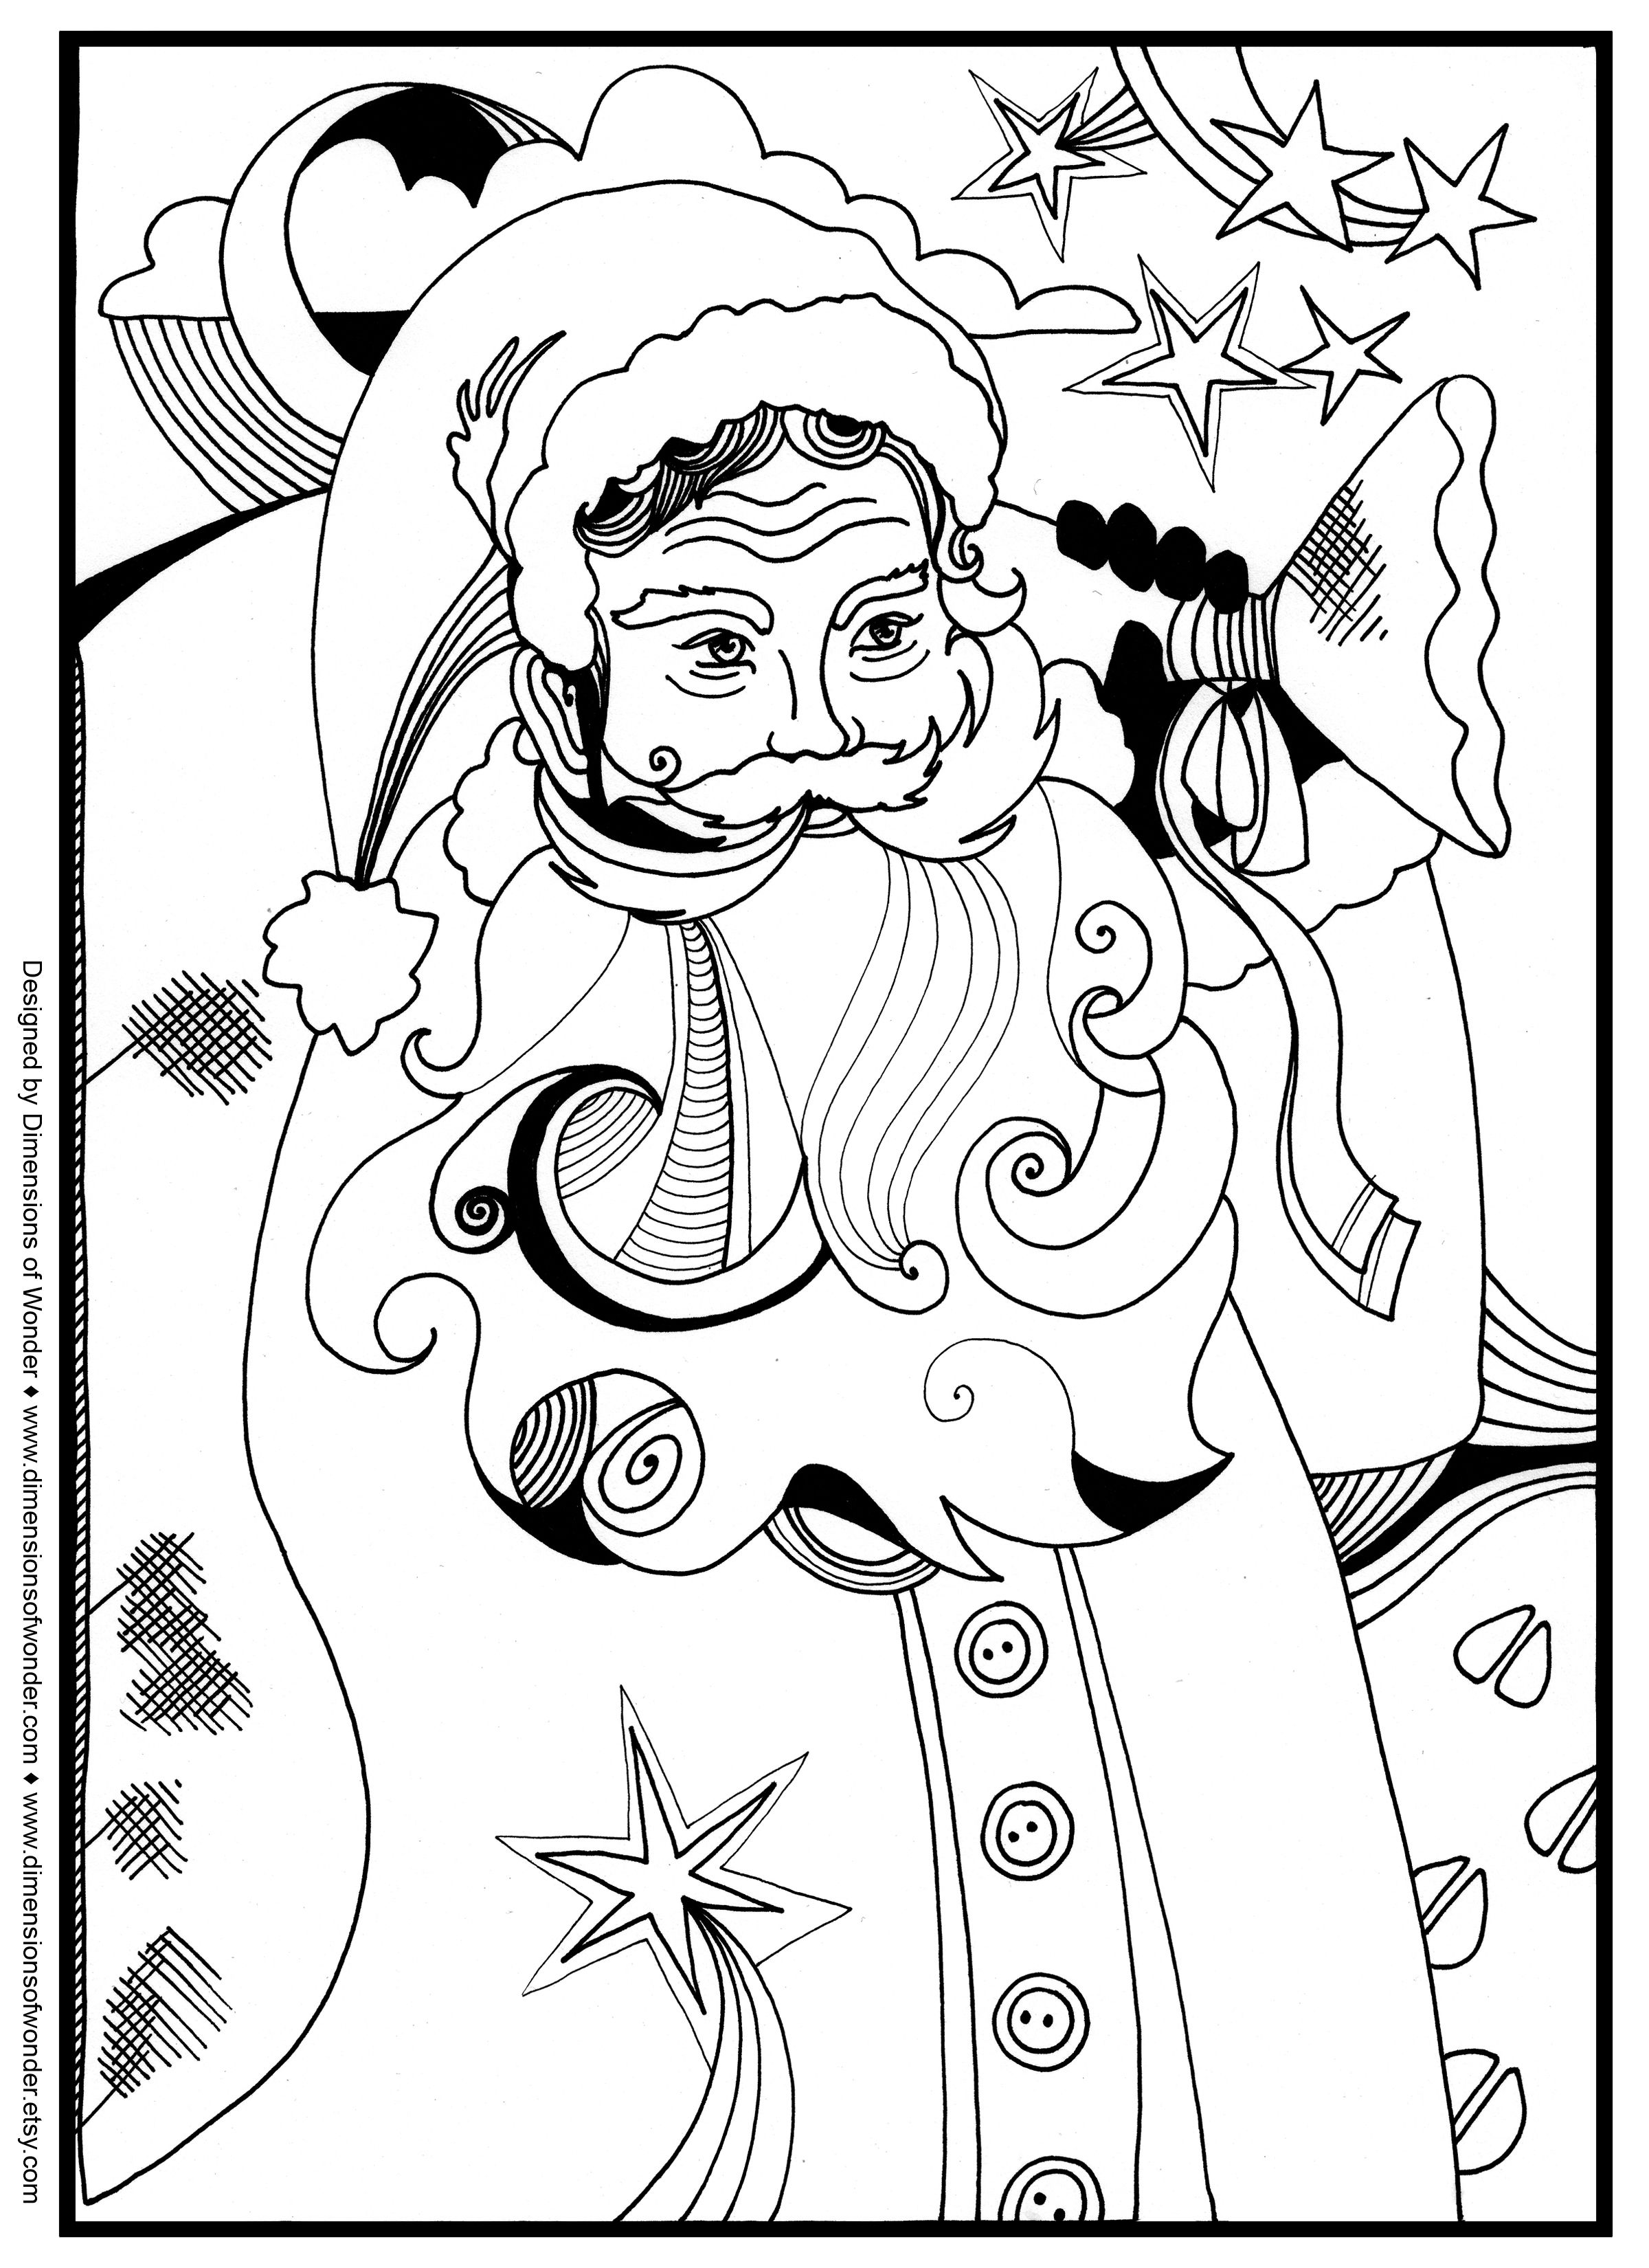 santa christmas around the world coloring pages kidsfreecoloringnet free download kids coloring printable